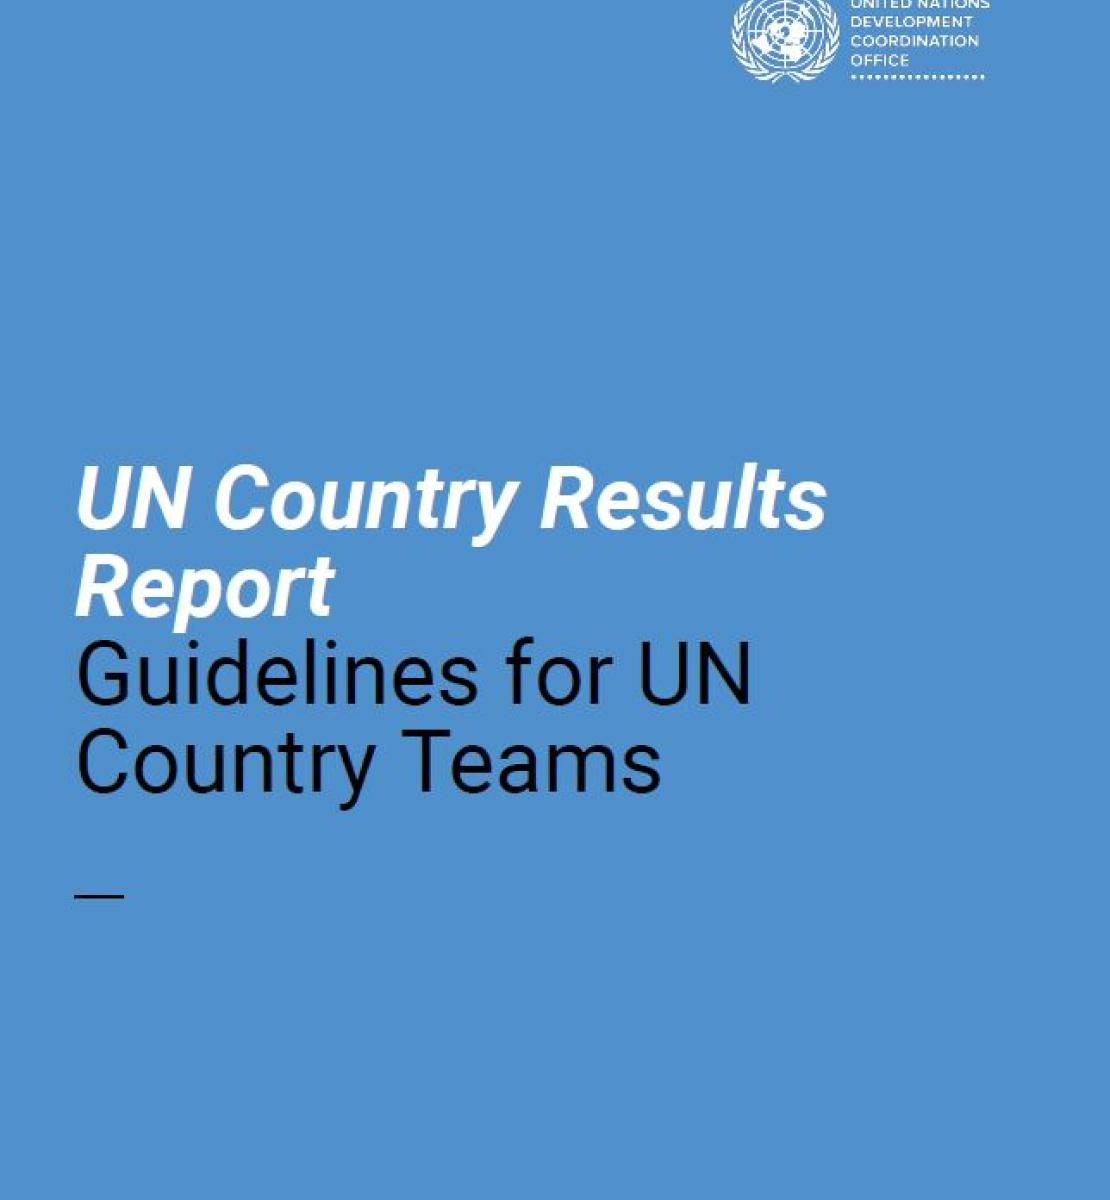 """Cover shows the title """"UN Country Results Report: Guidelines for UN Country Teams"""",  over blue background"""